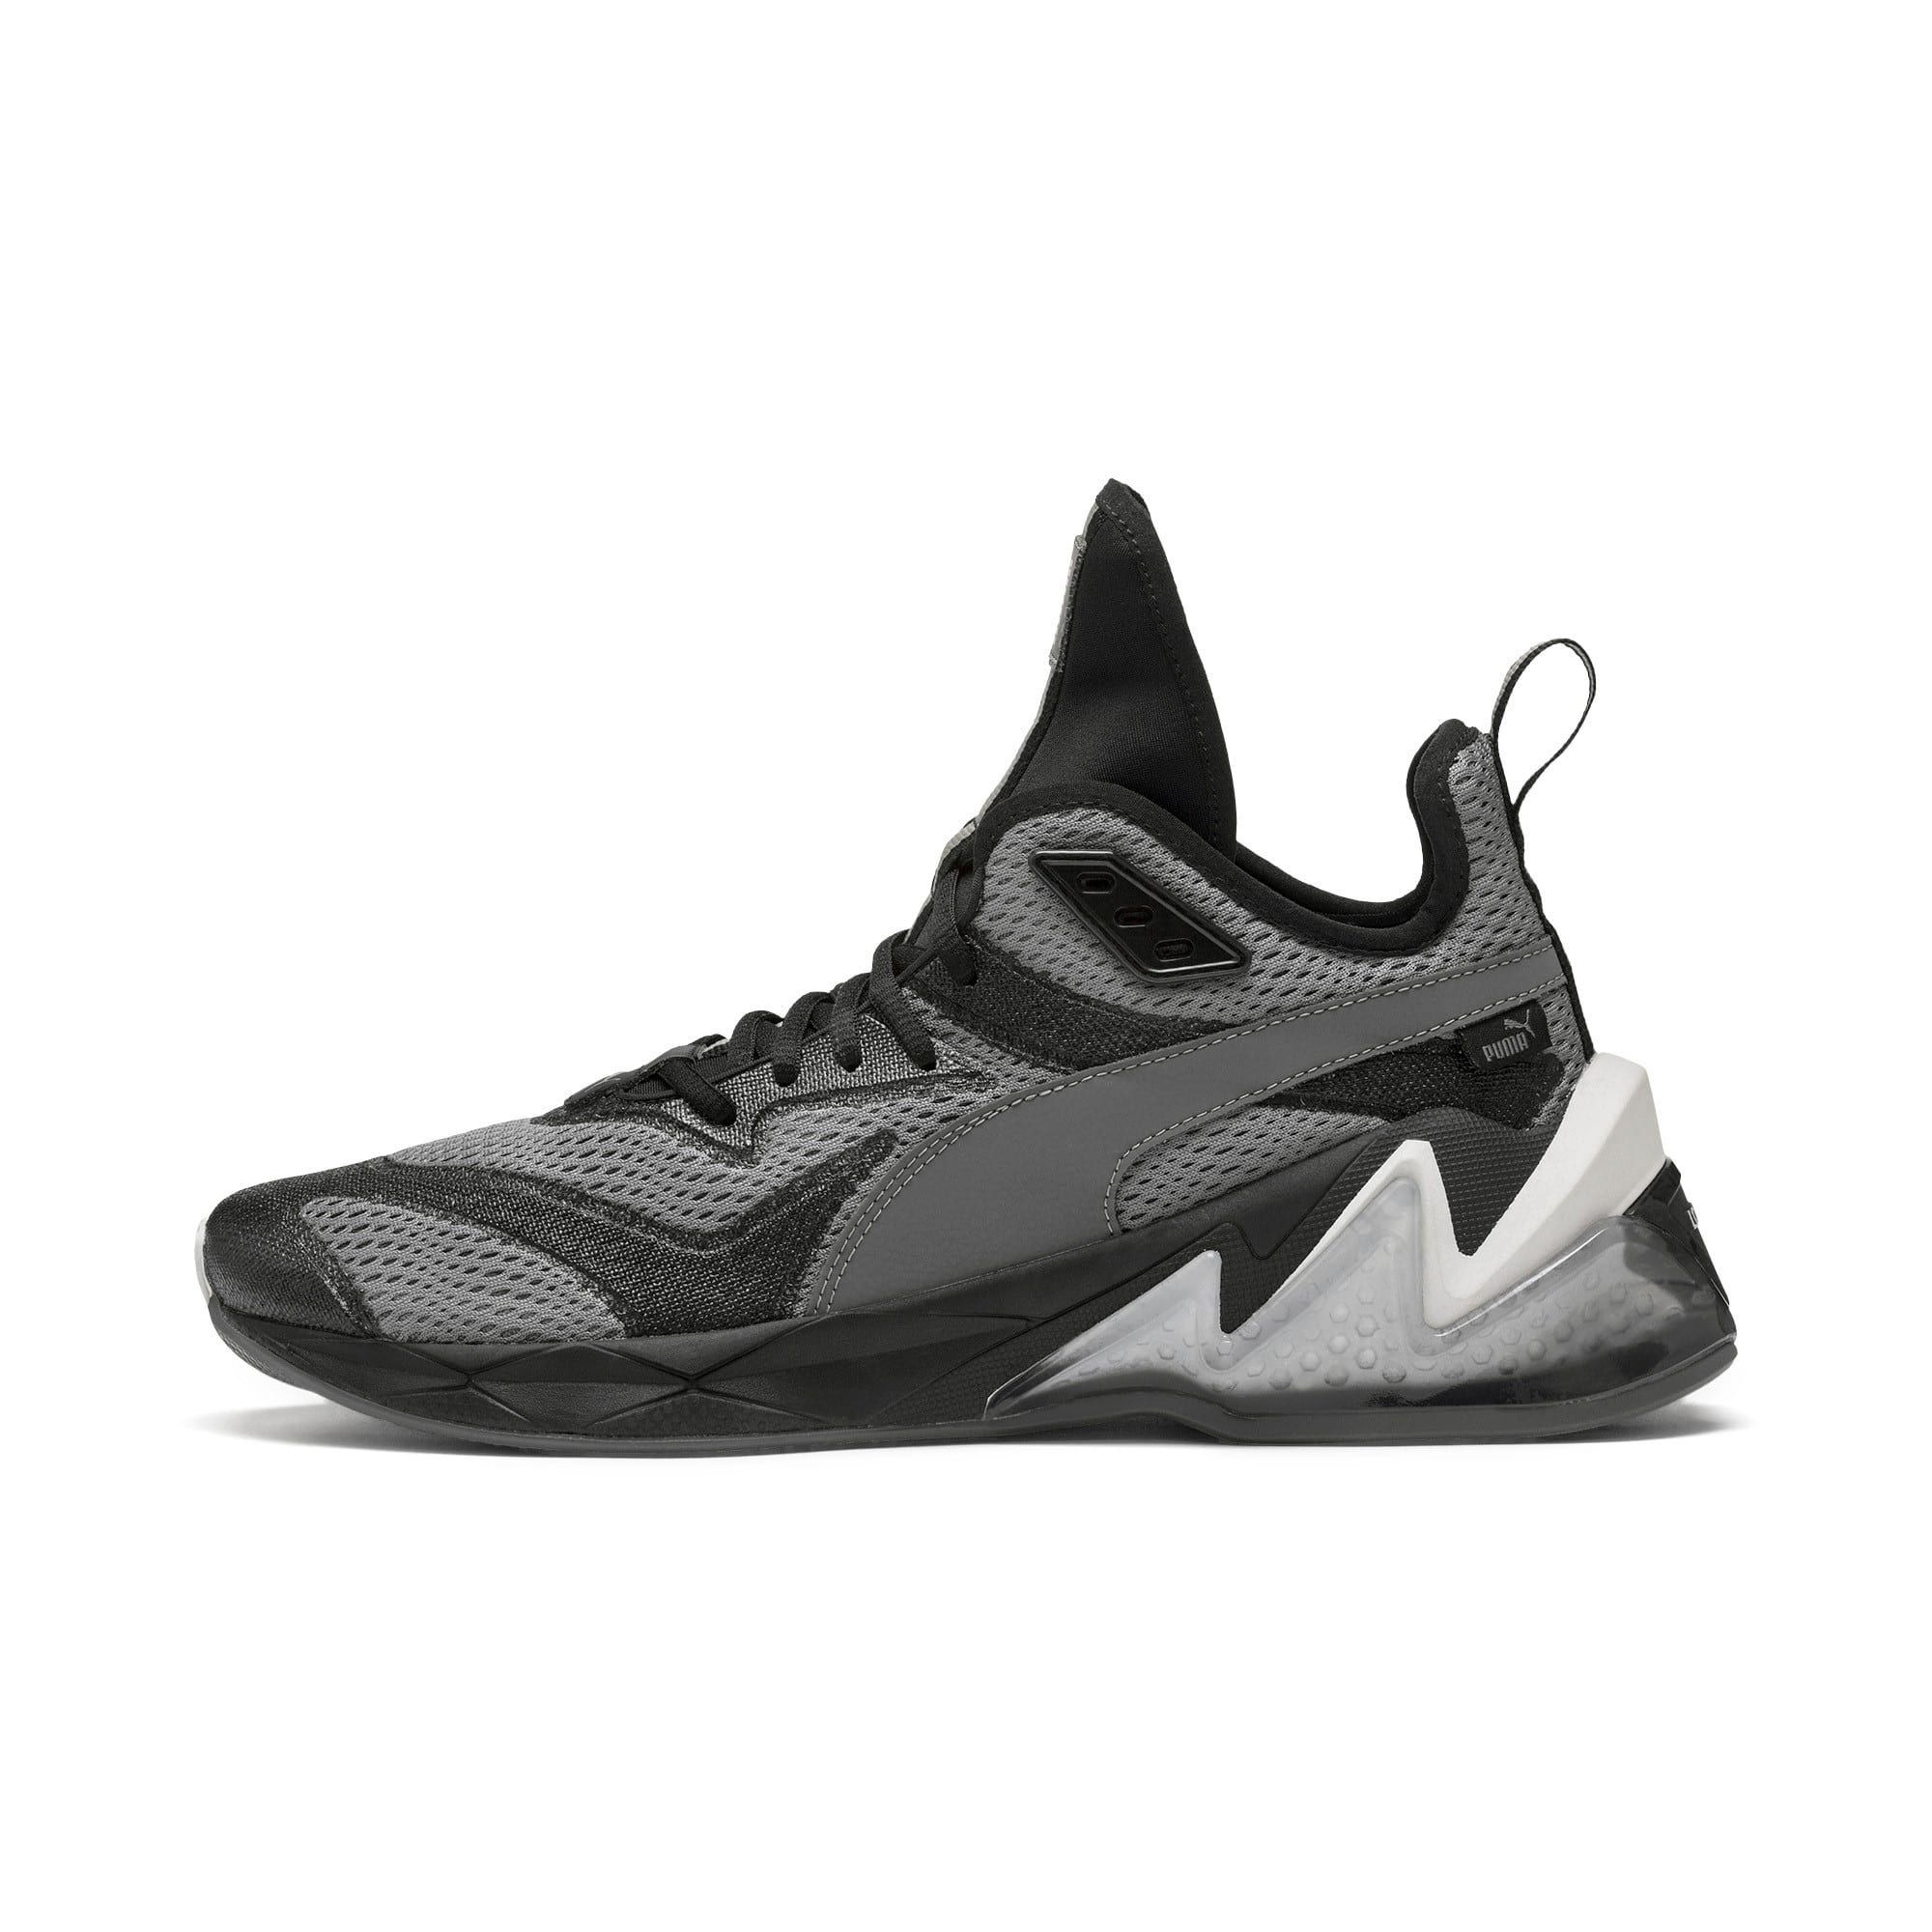 PUMA Leather Lqdcell Origin Tech Men's Training Shoes in